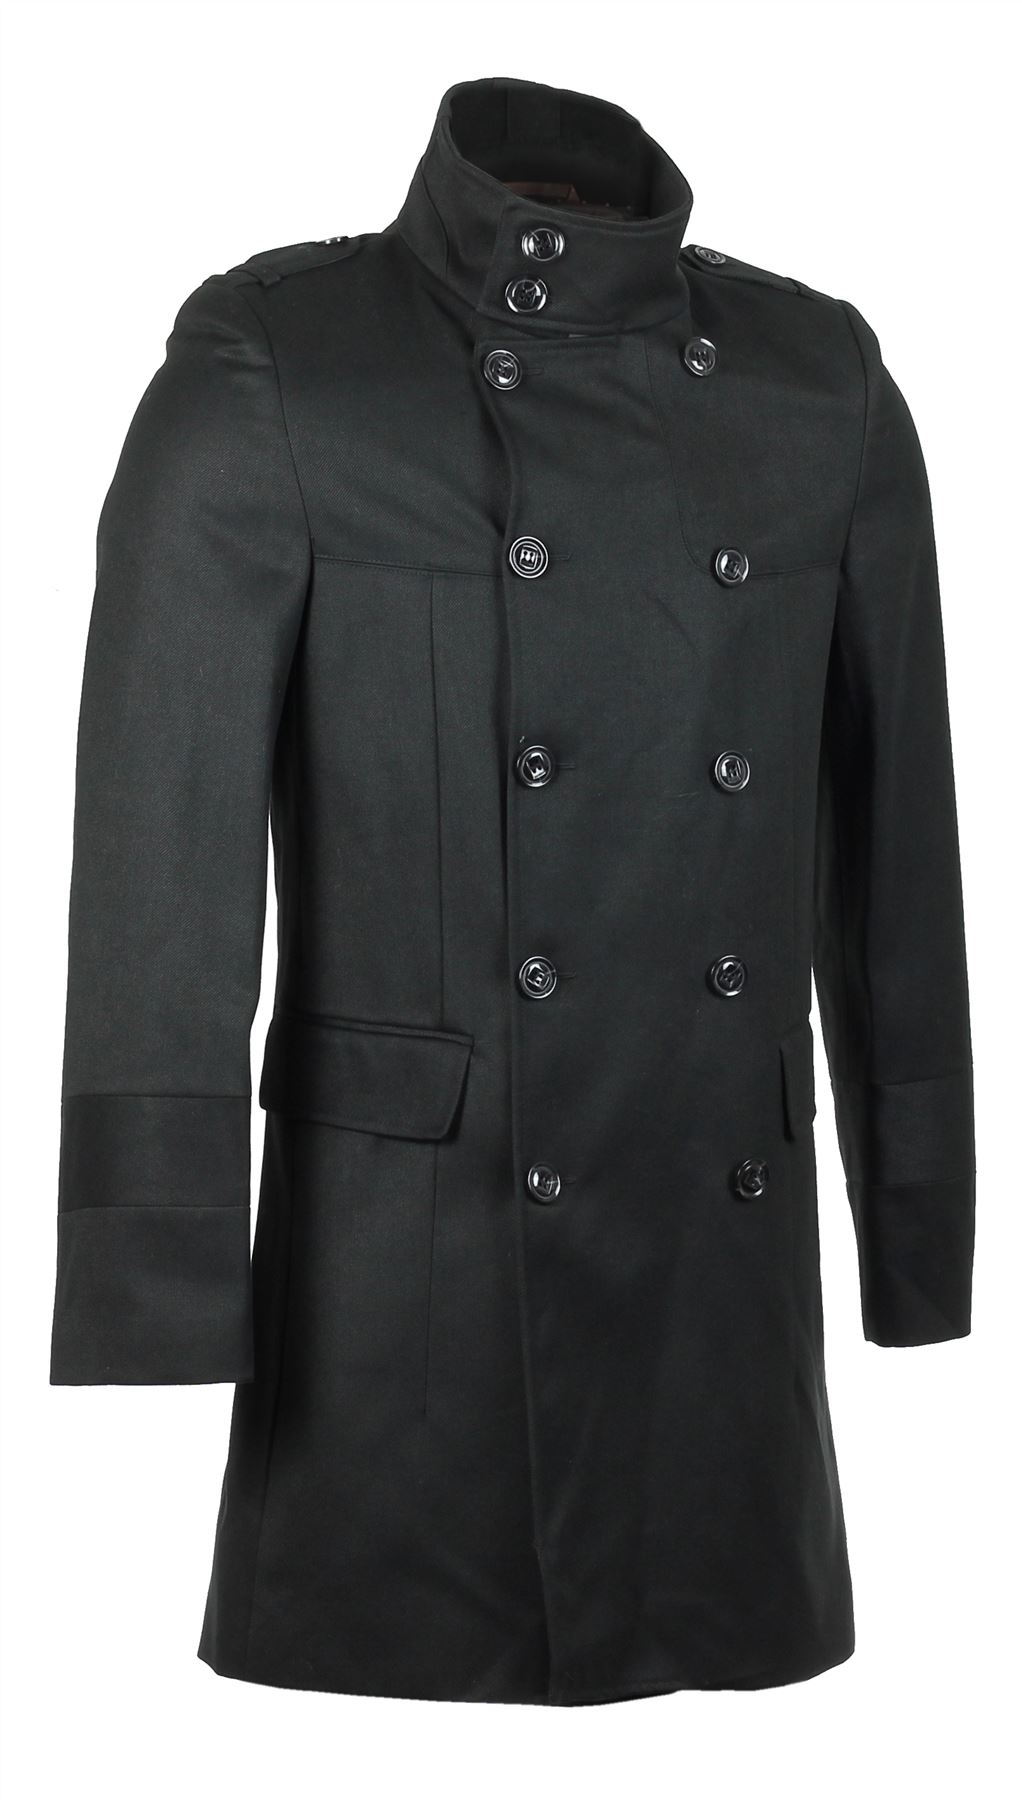 Find great deals on eBay for mens winter blazer. Shop with confidence.